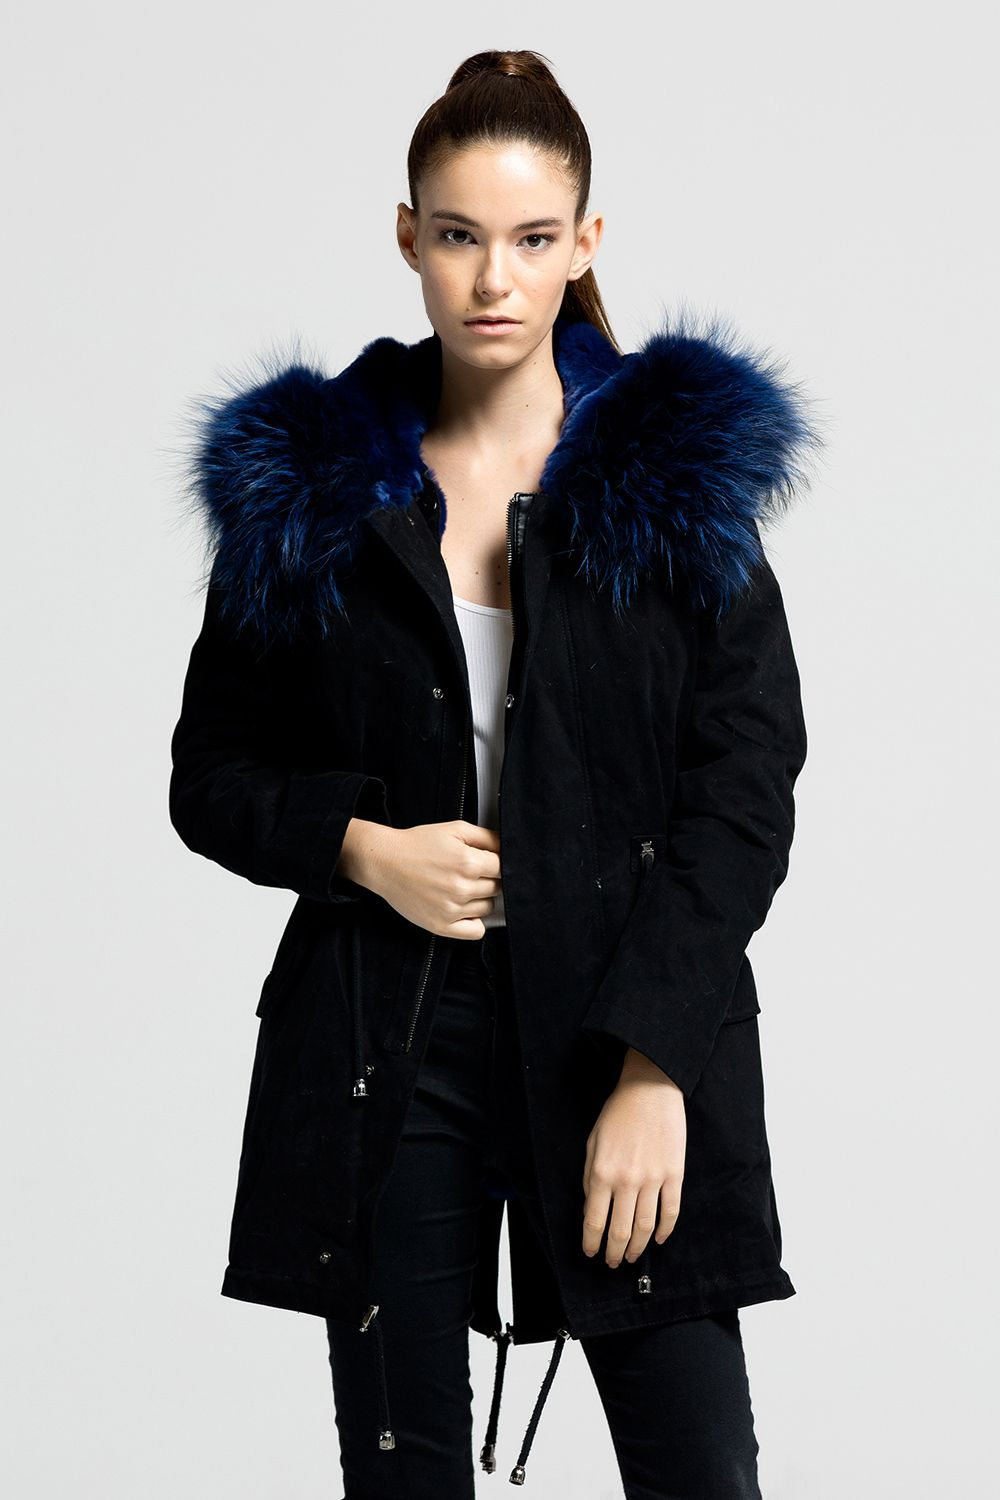 Ipekyol mont 2015 2 jpg pictures to pin on pinterest - Leather Feather K Rkl Parka